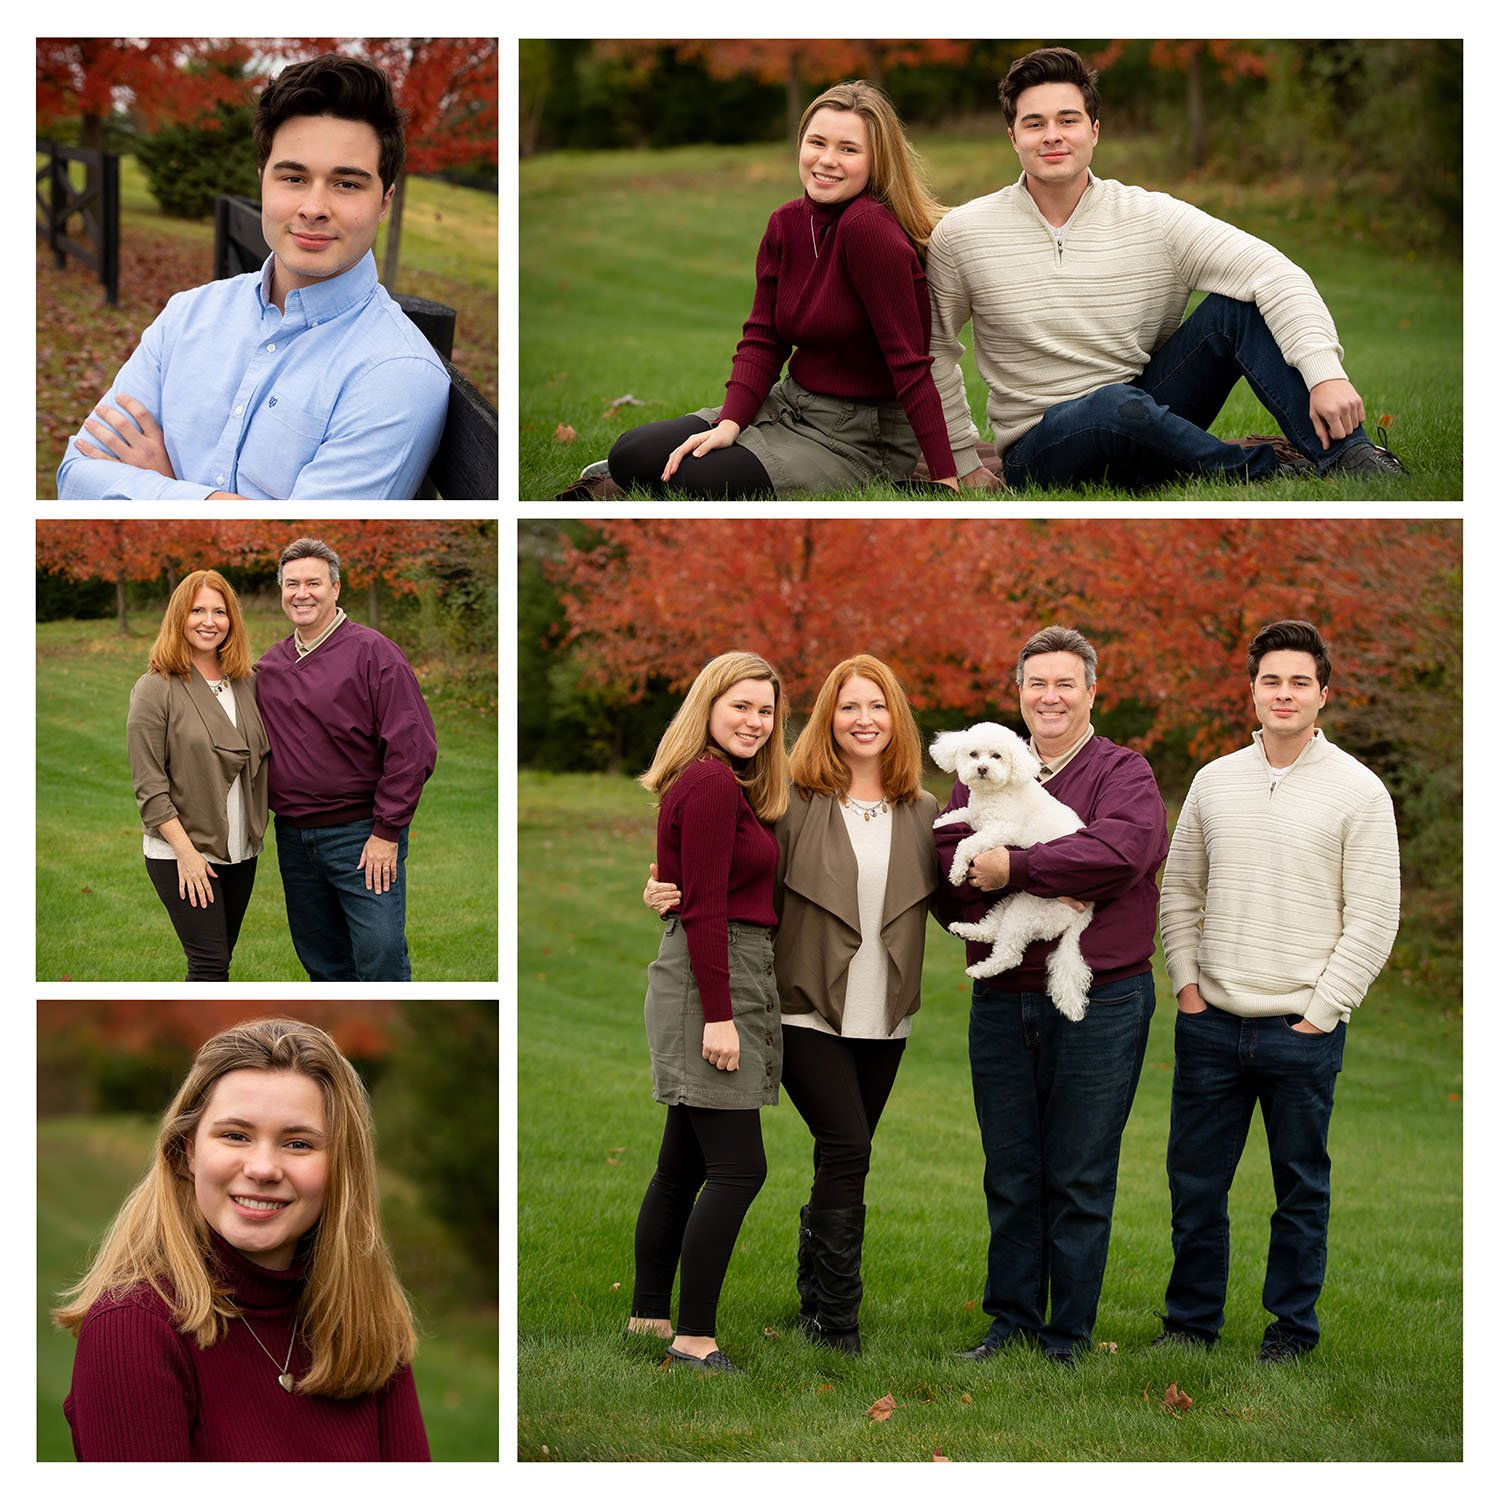 Family of four posing for photos in Oconomowoc, Wisconsin in the fall